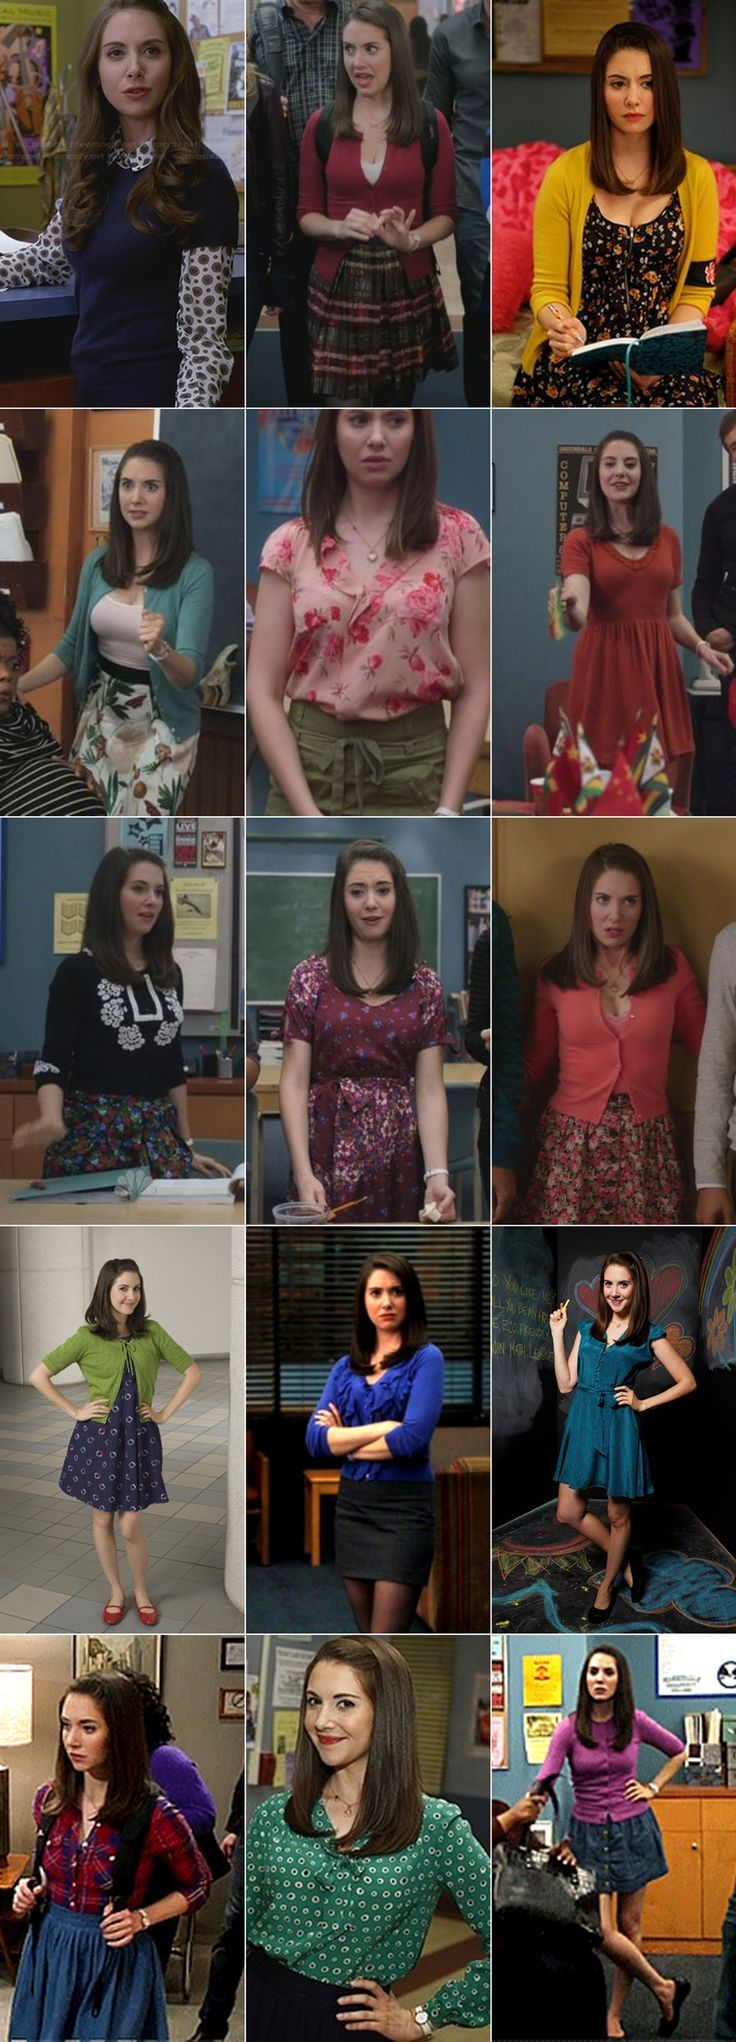 Character Fashion. Annie Edison from Community.  http://www.thissplendidshambles.com/2016/10/character-fashion-annie-edison-community/